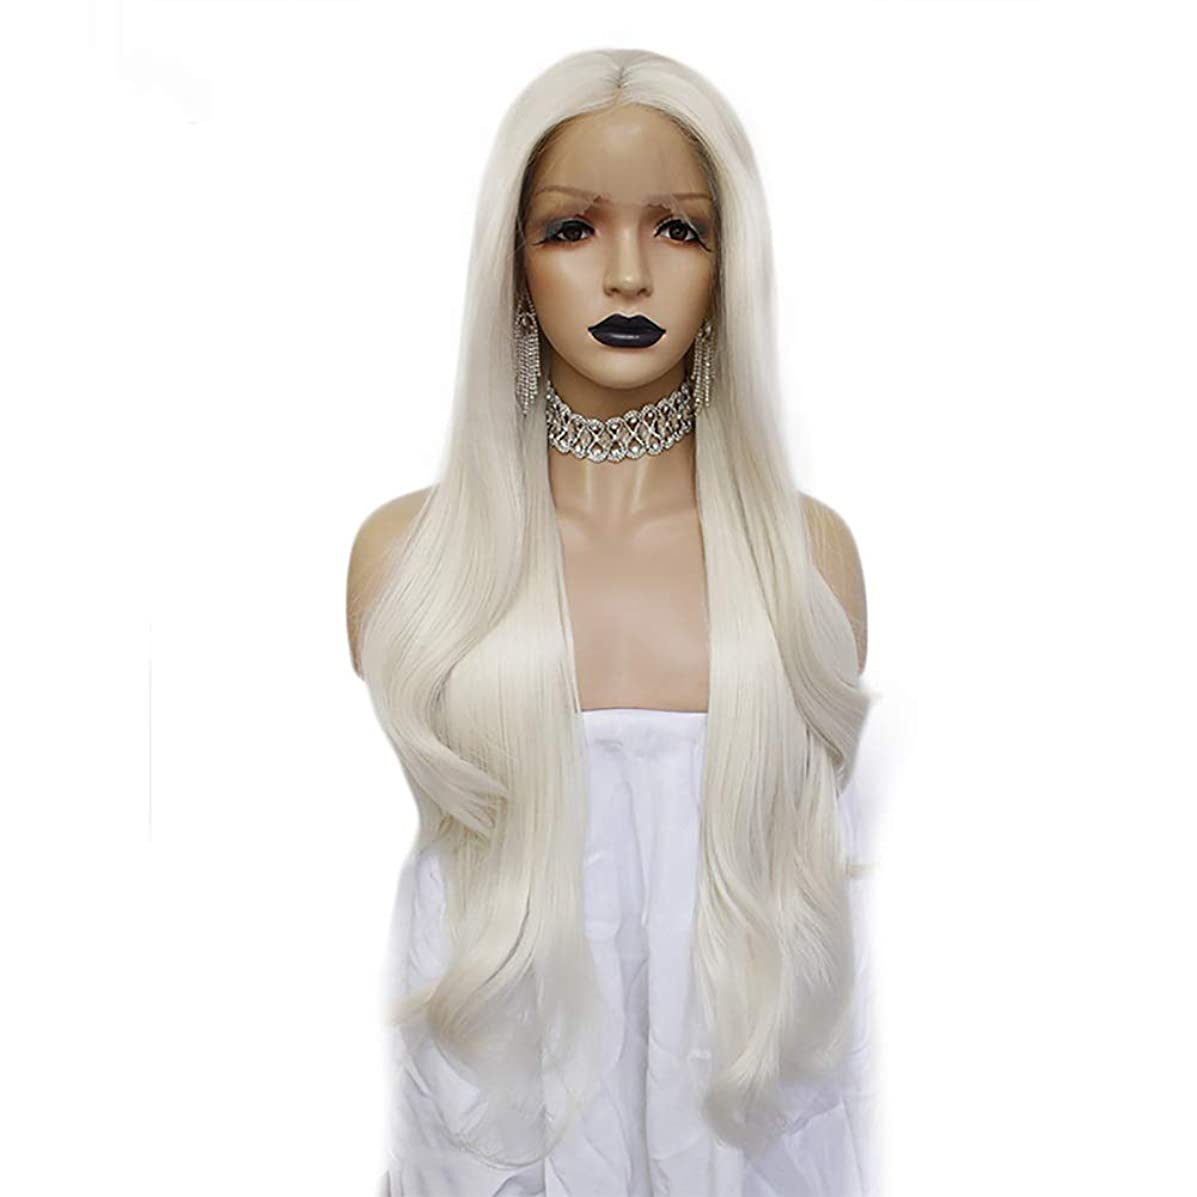 Anogol Hair Cap+ Platinum Blonde Lace Front Wig for Women 613 Wig Long wavy wig lace front Synthetic Wig with Middle Part Body Wave Lace Front Wig 180% for Cosplay Party